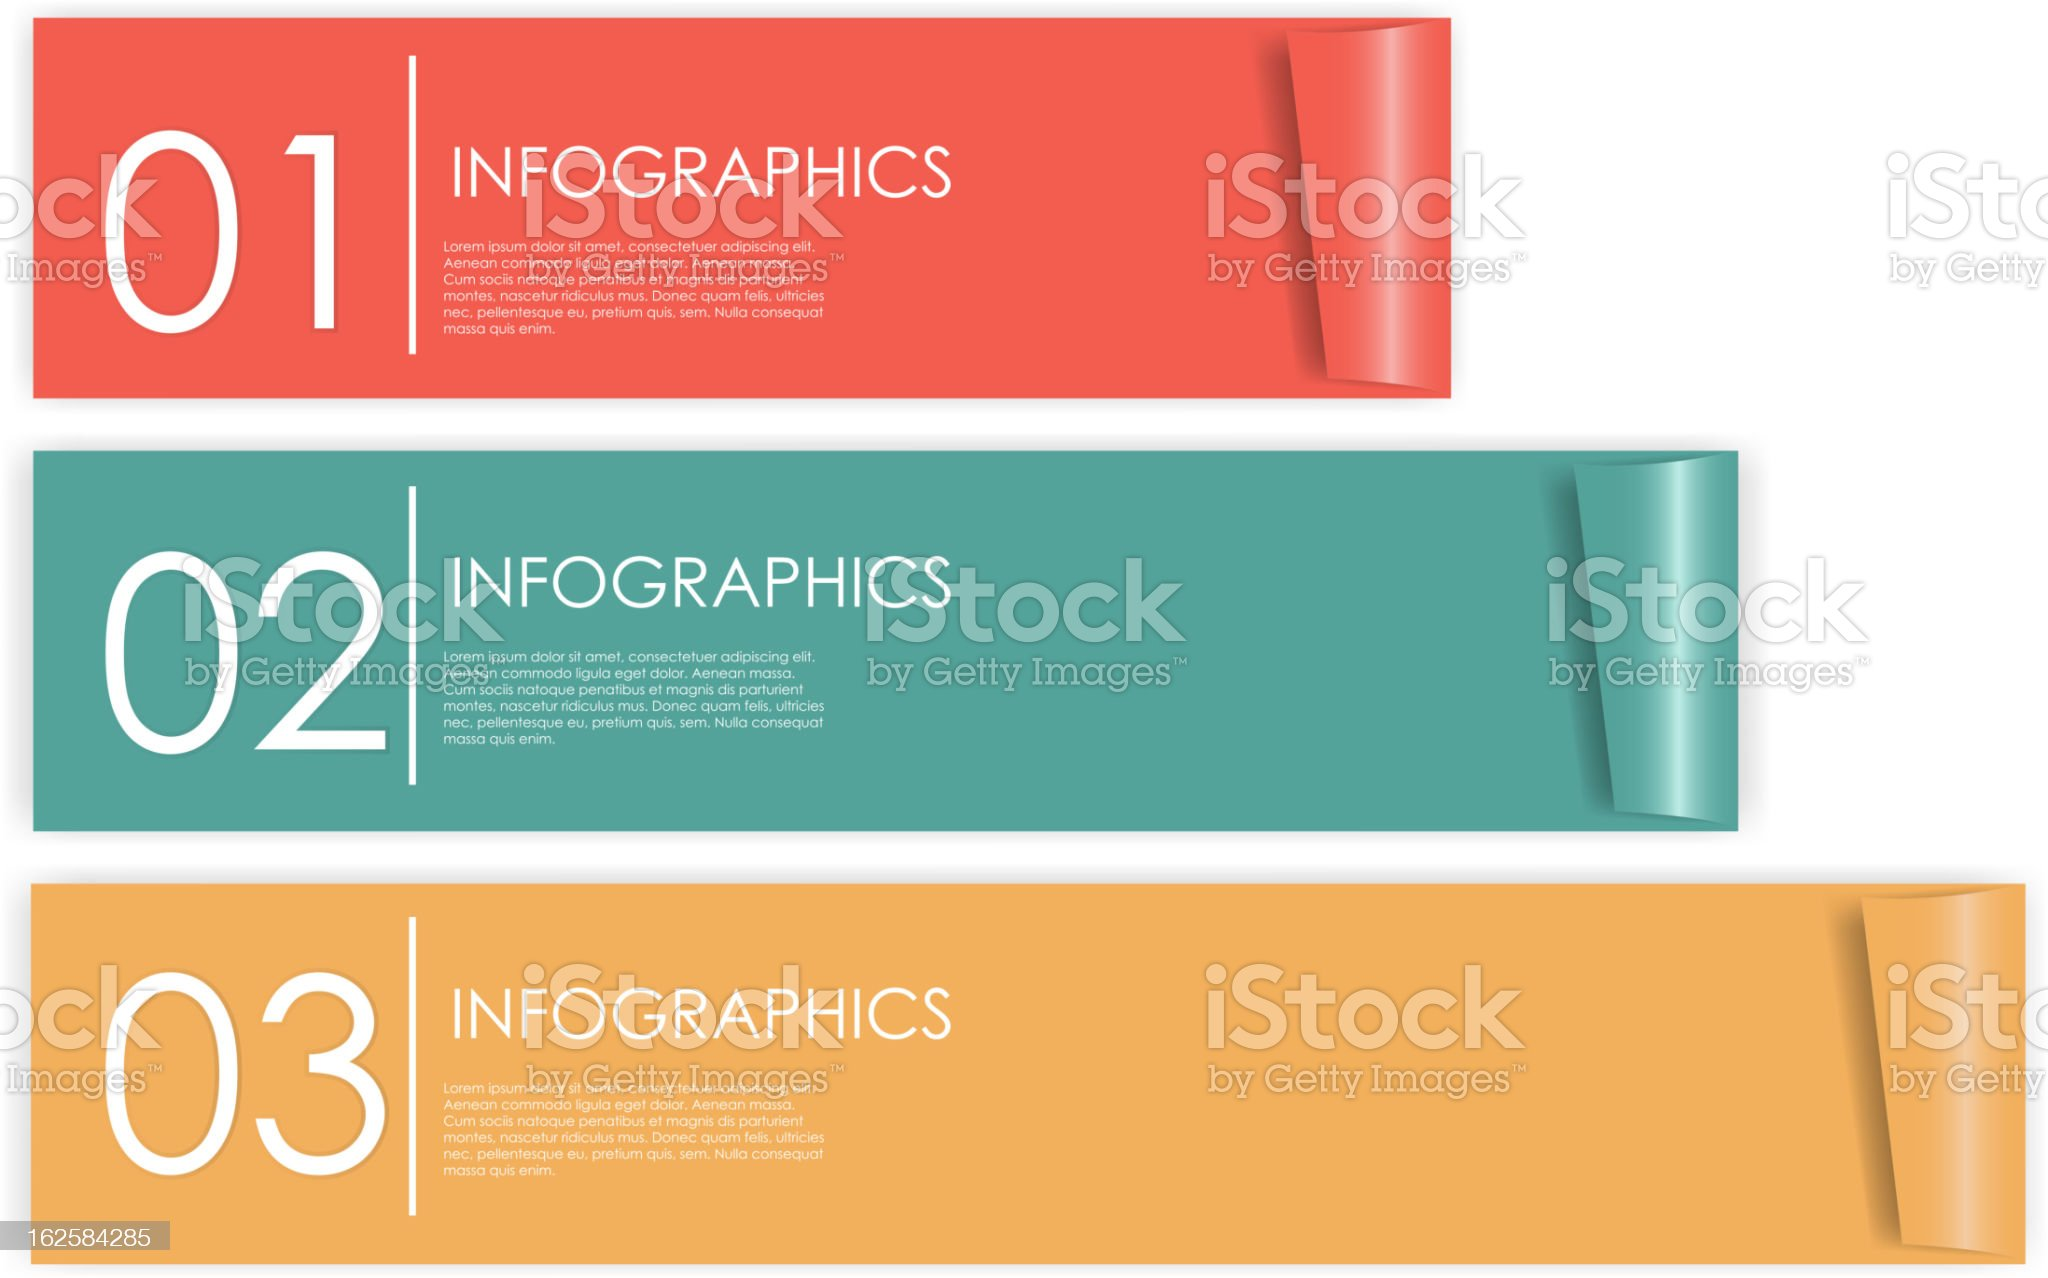 Numbered infographics banner design royalty-free stock vector art